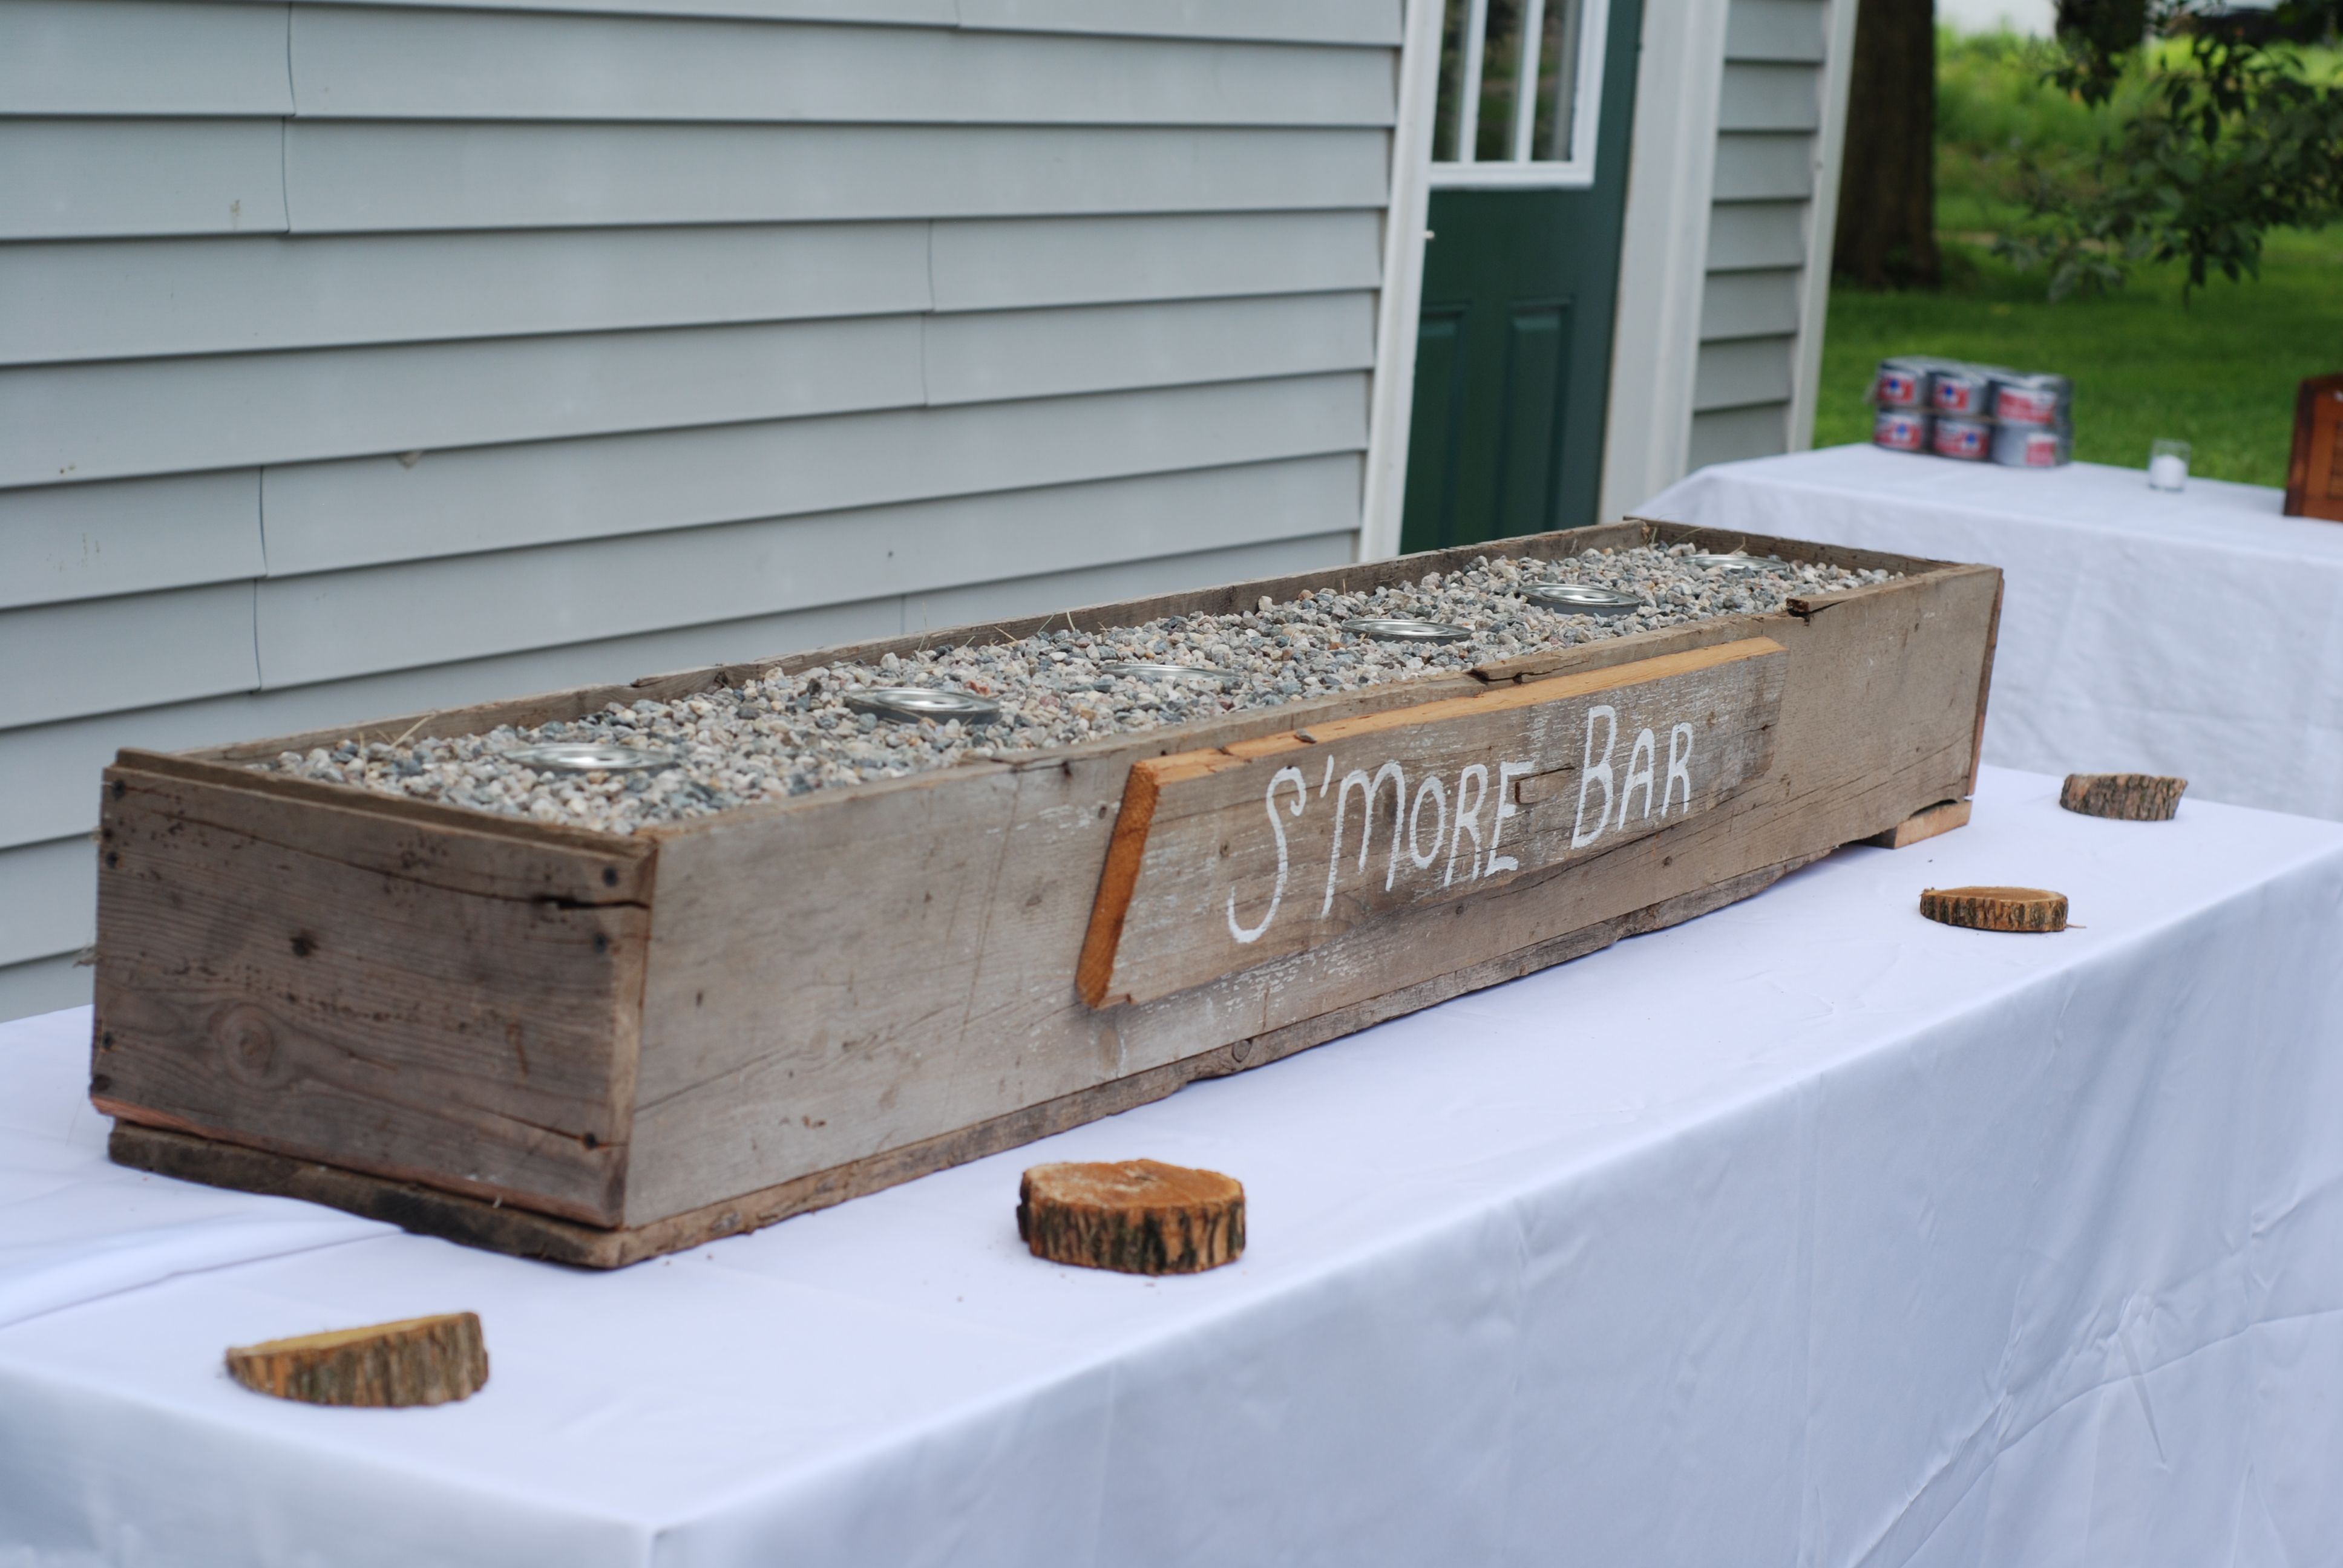 smore bar was a big hit, email for instructions on how to put it together